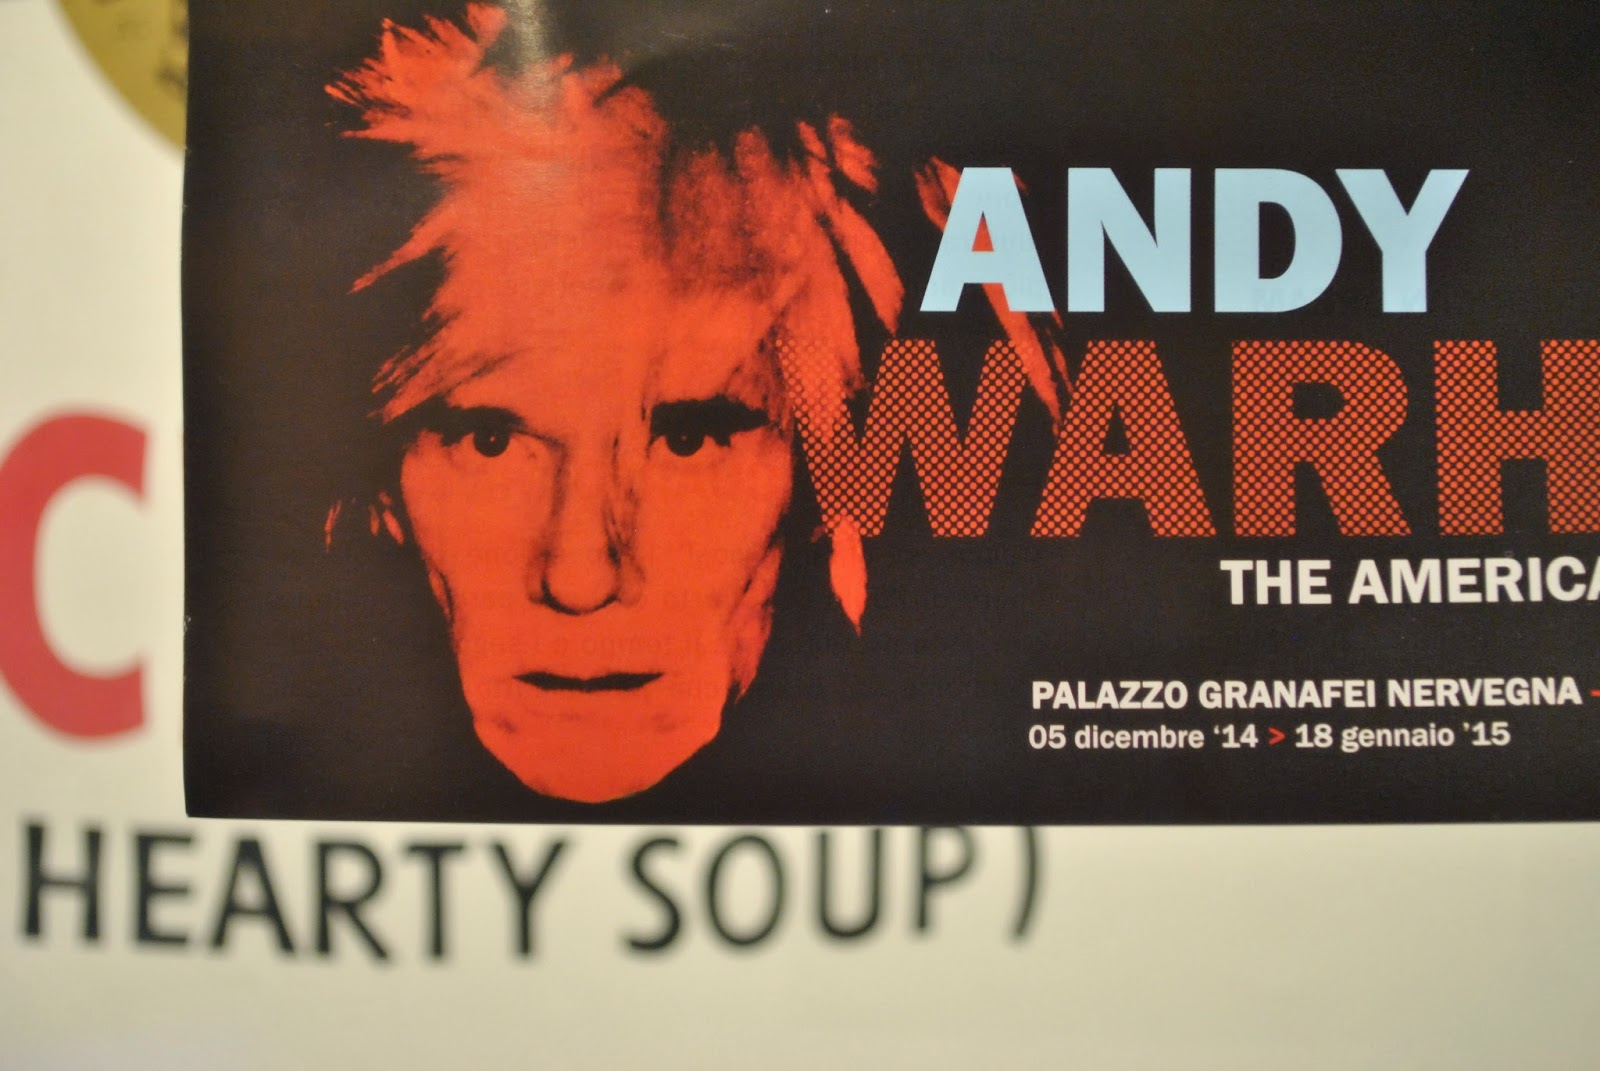 an introduction to the most influential comercial artist andy warhol Andy warhol was an american artist who was a leading figure in the visual art   expansion of the record industry and the introduction of the vinyl record, hi-fi,   the resulting imagery in both warhol's commercial art and later in his fine art   one of the most important collaborators during this period was gerard malanga.